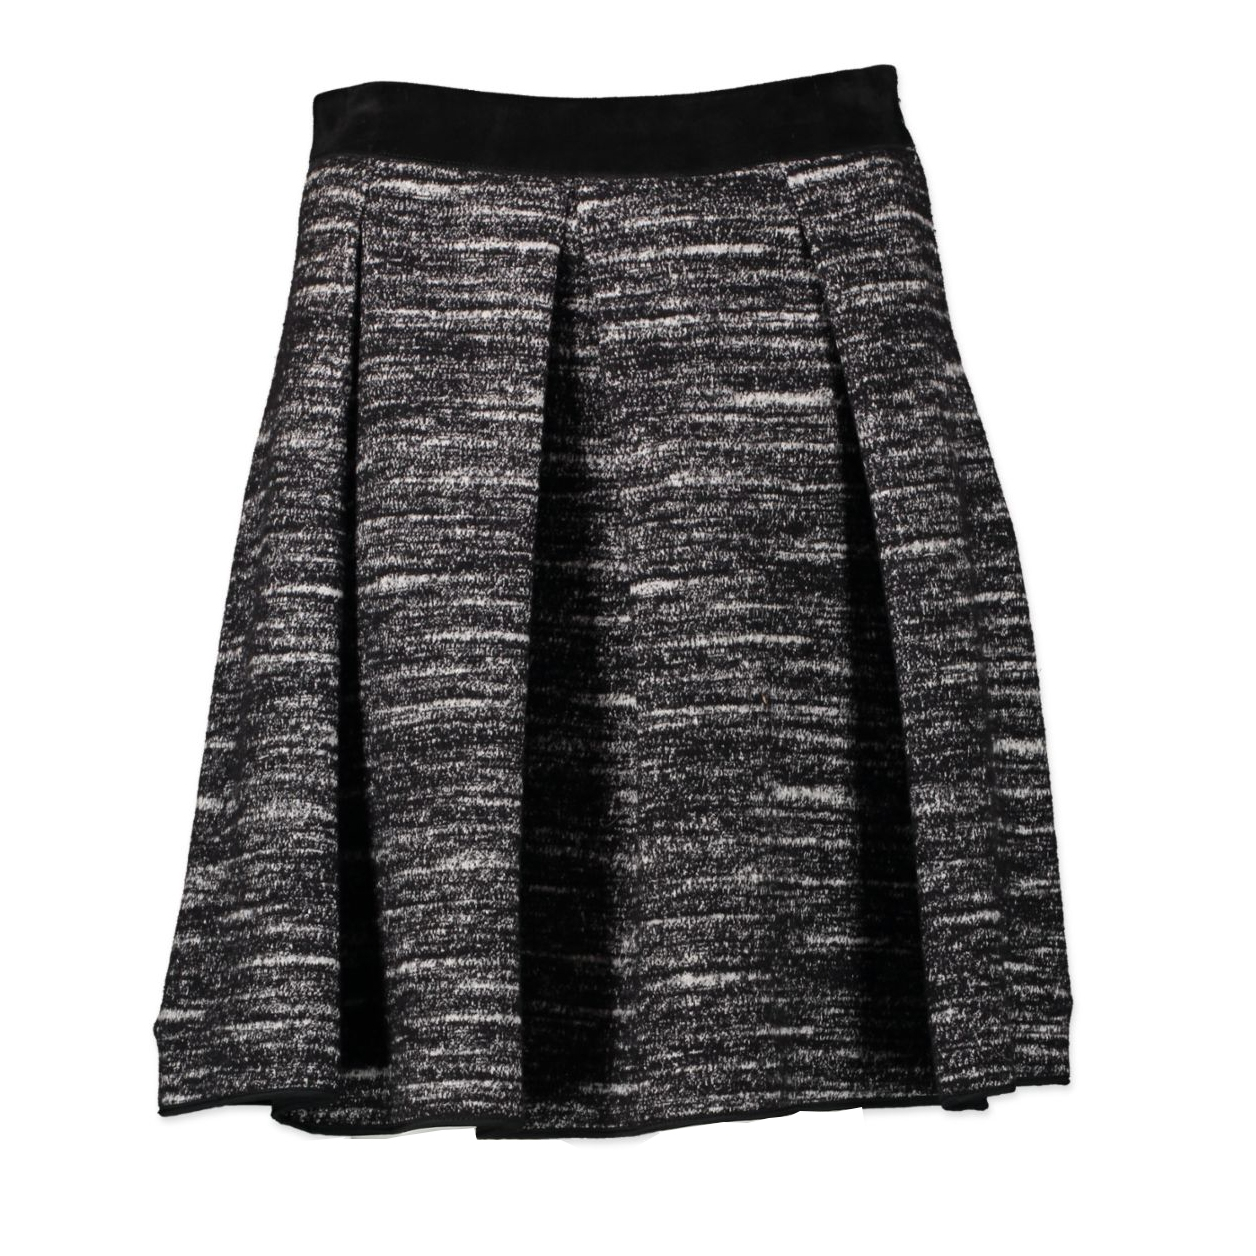 We buy and sell your authentic Proenza Schouler Wool Skirt - size 34